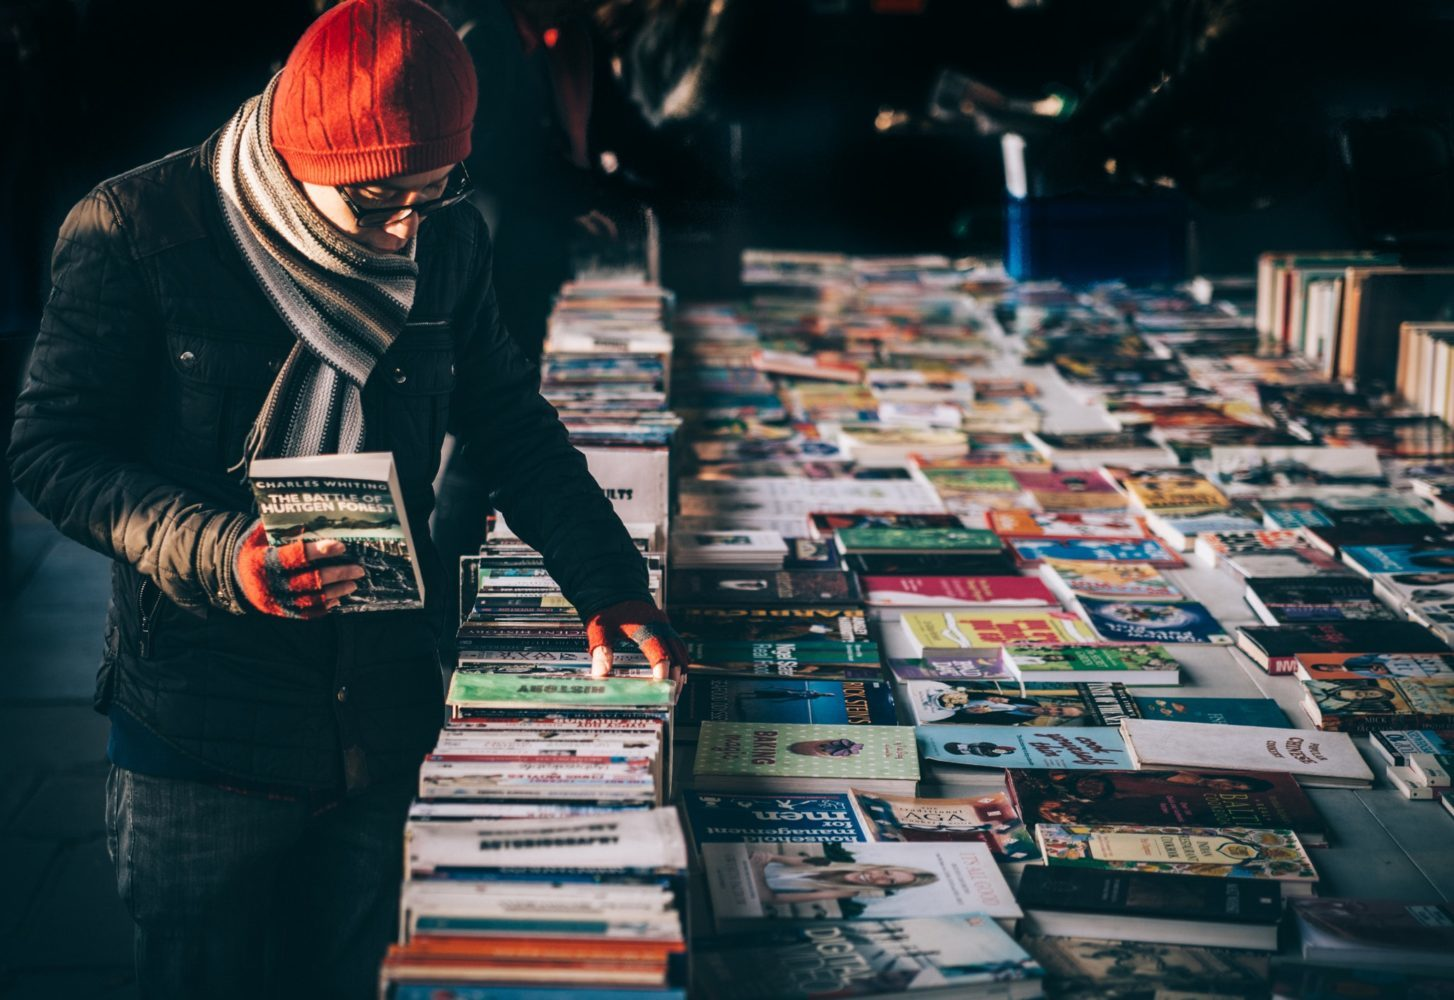 free books and where to find them e1550771303754